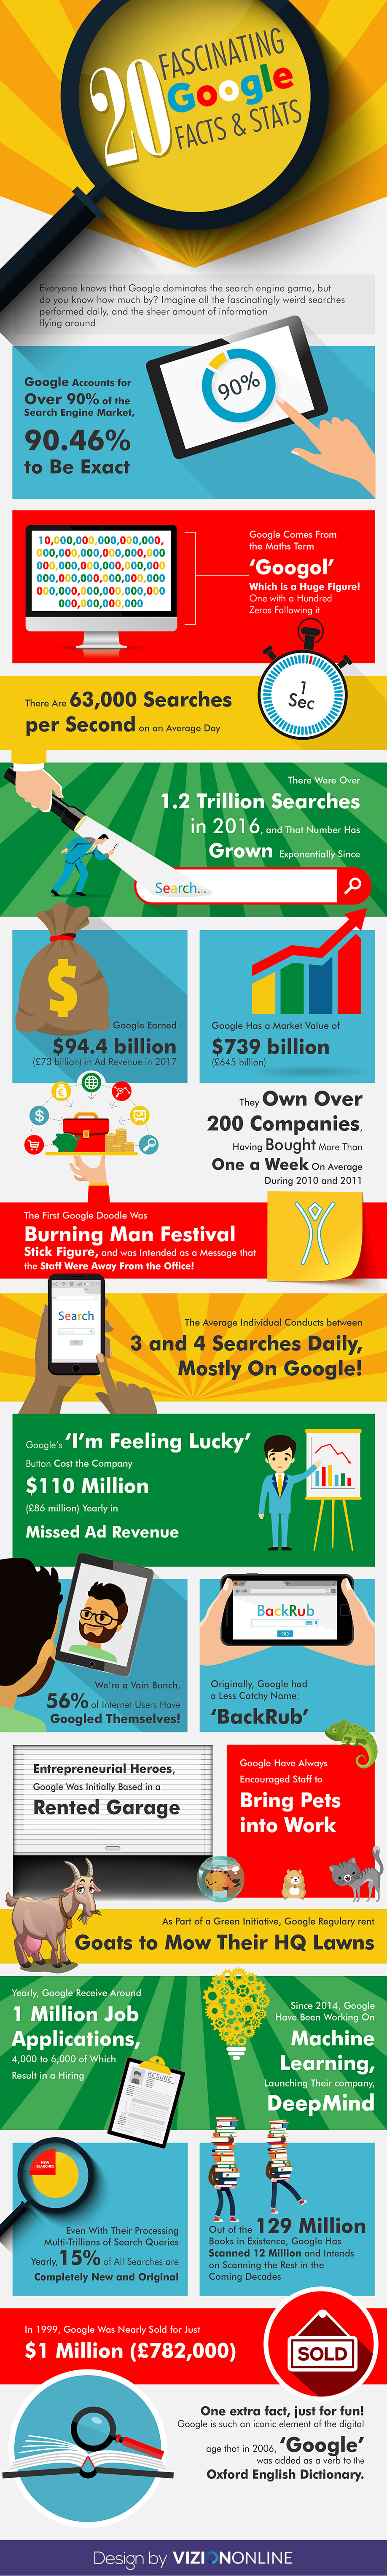 Google facts infographic